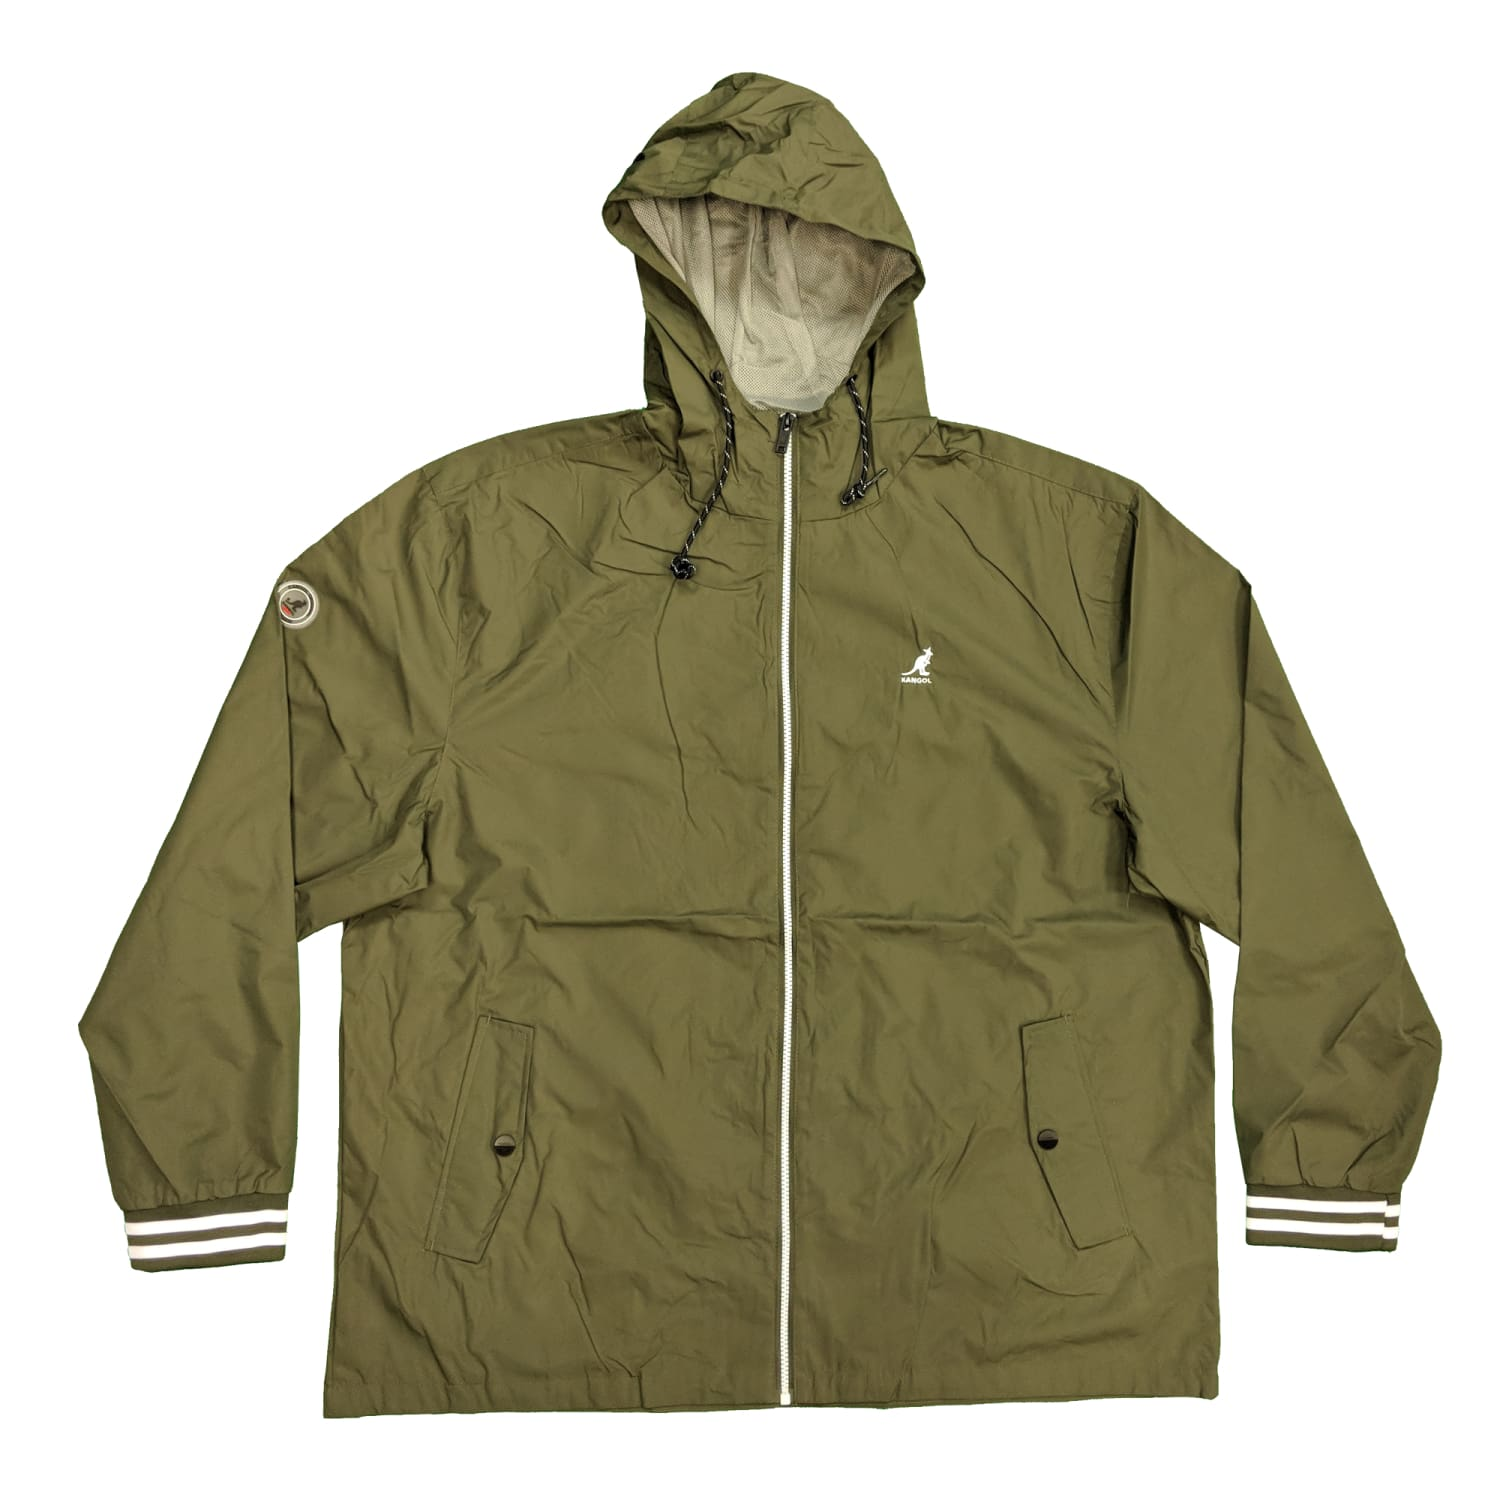 Kangol Waterproof Jacket - K601497 - Easton - Olive 1